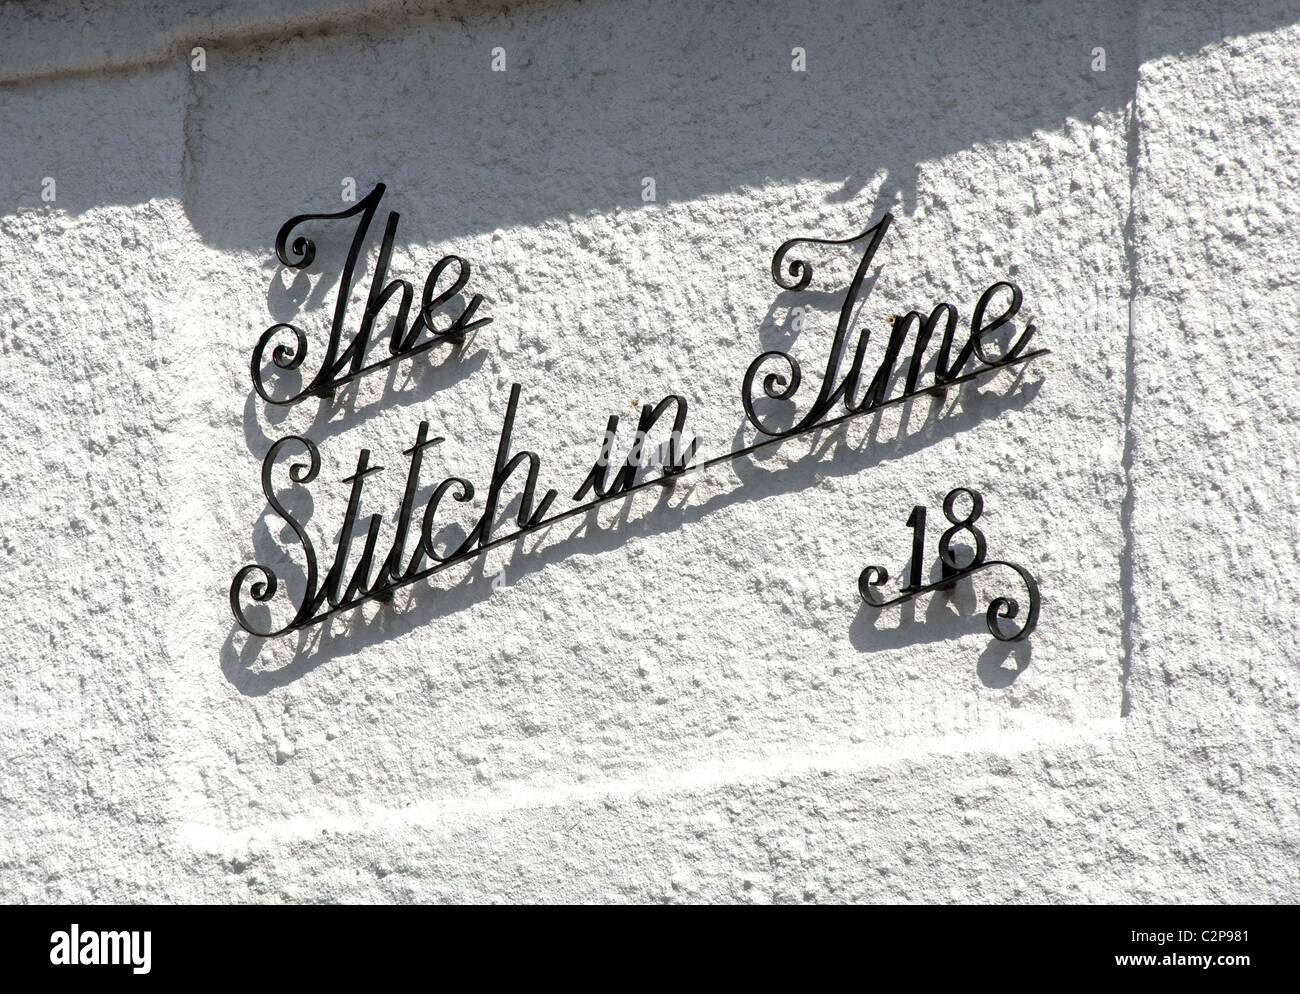 'The Stitch in Time' name on a house - Stock Image